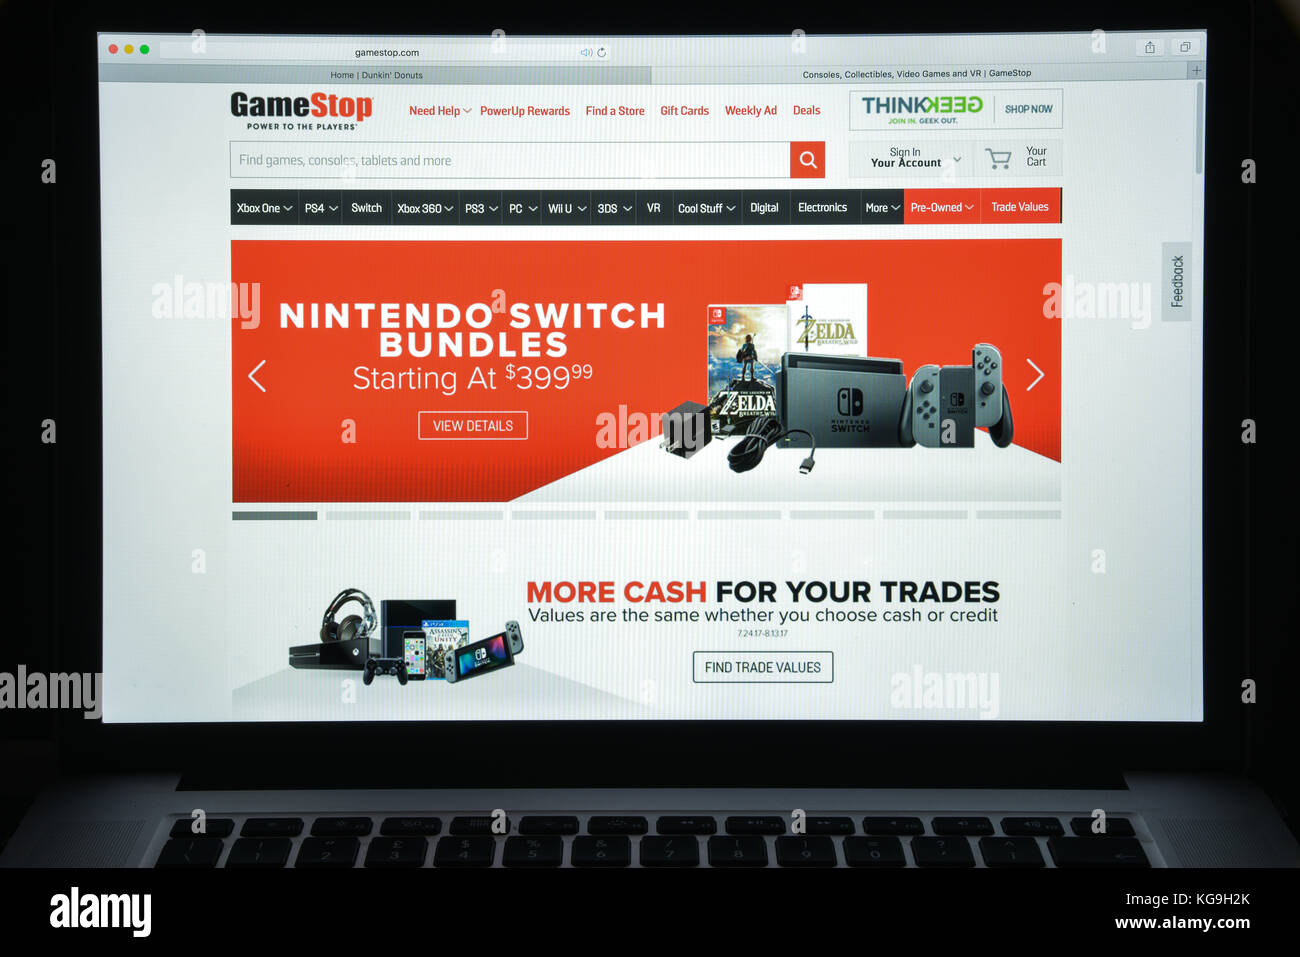 Shop GameStop, the world's largest retail gaming destination for Xbox One X, PlayStation 4 and Nintendo Switch games, systems, consoles & accessories. Shop a wide selection of gamer-centric apparel, collectibles & more.